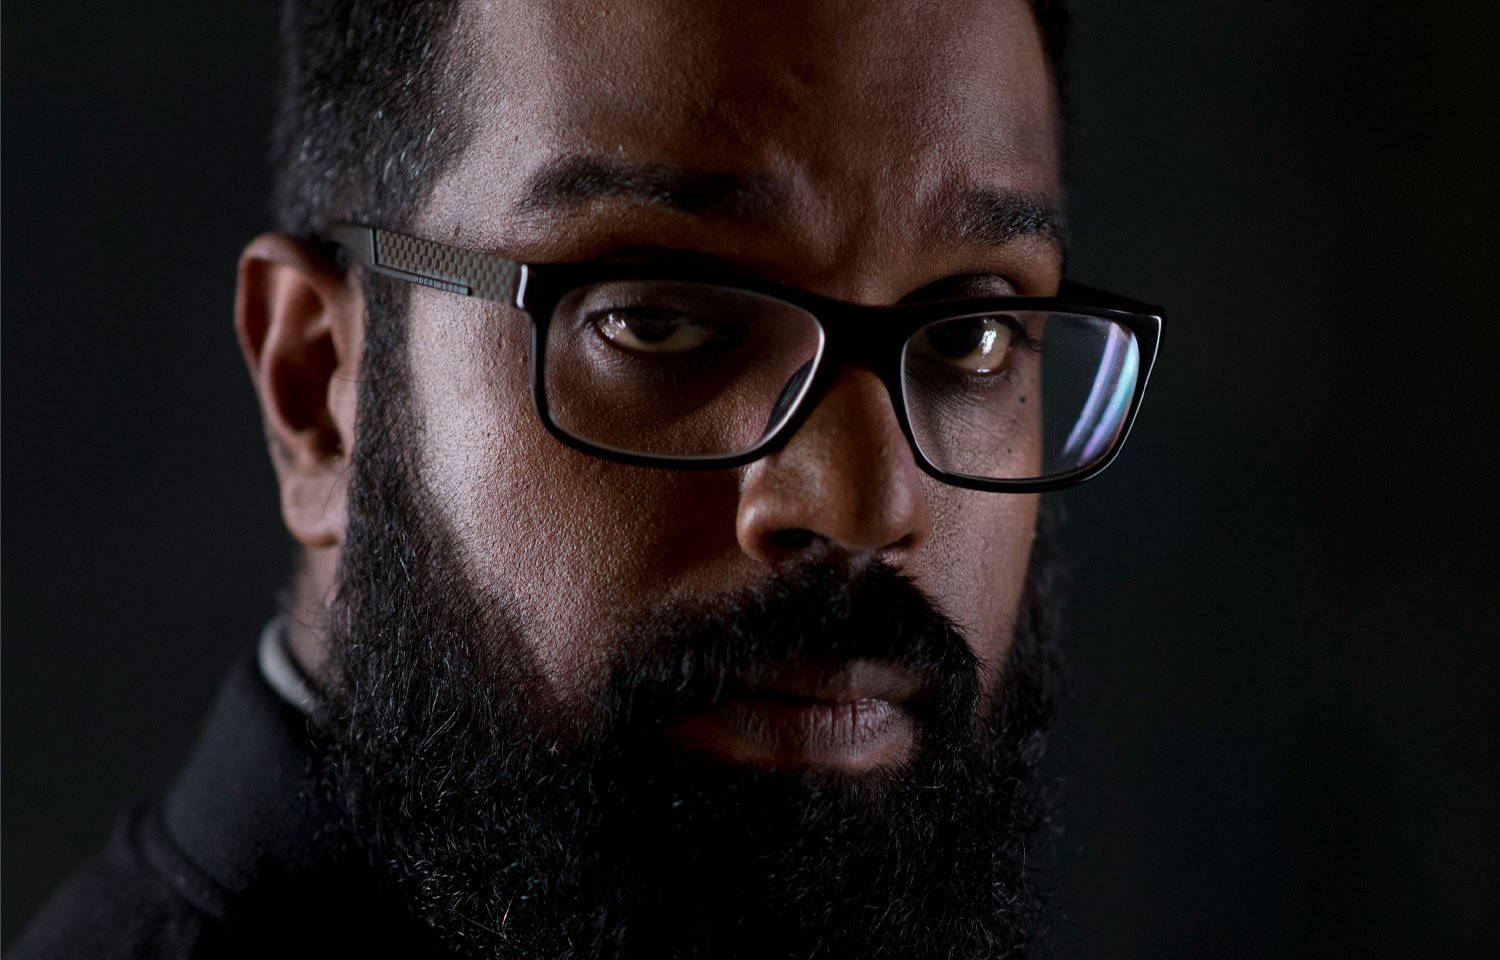 ROMESH RANGANATHAN TO STAR IN CINDERELLA REMAKE